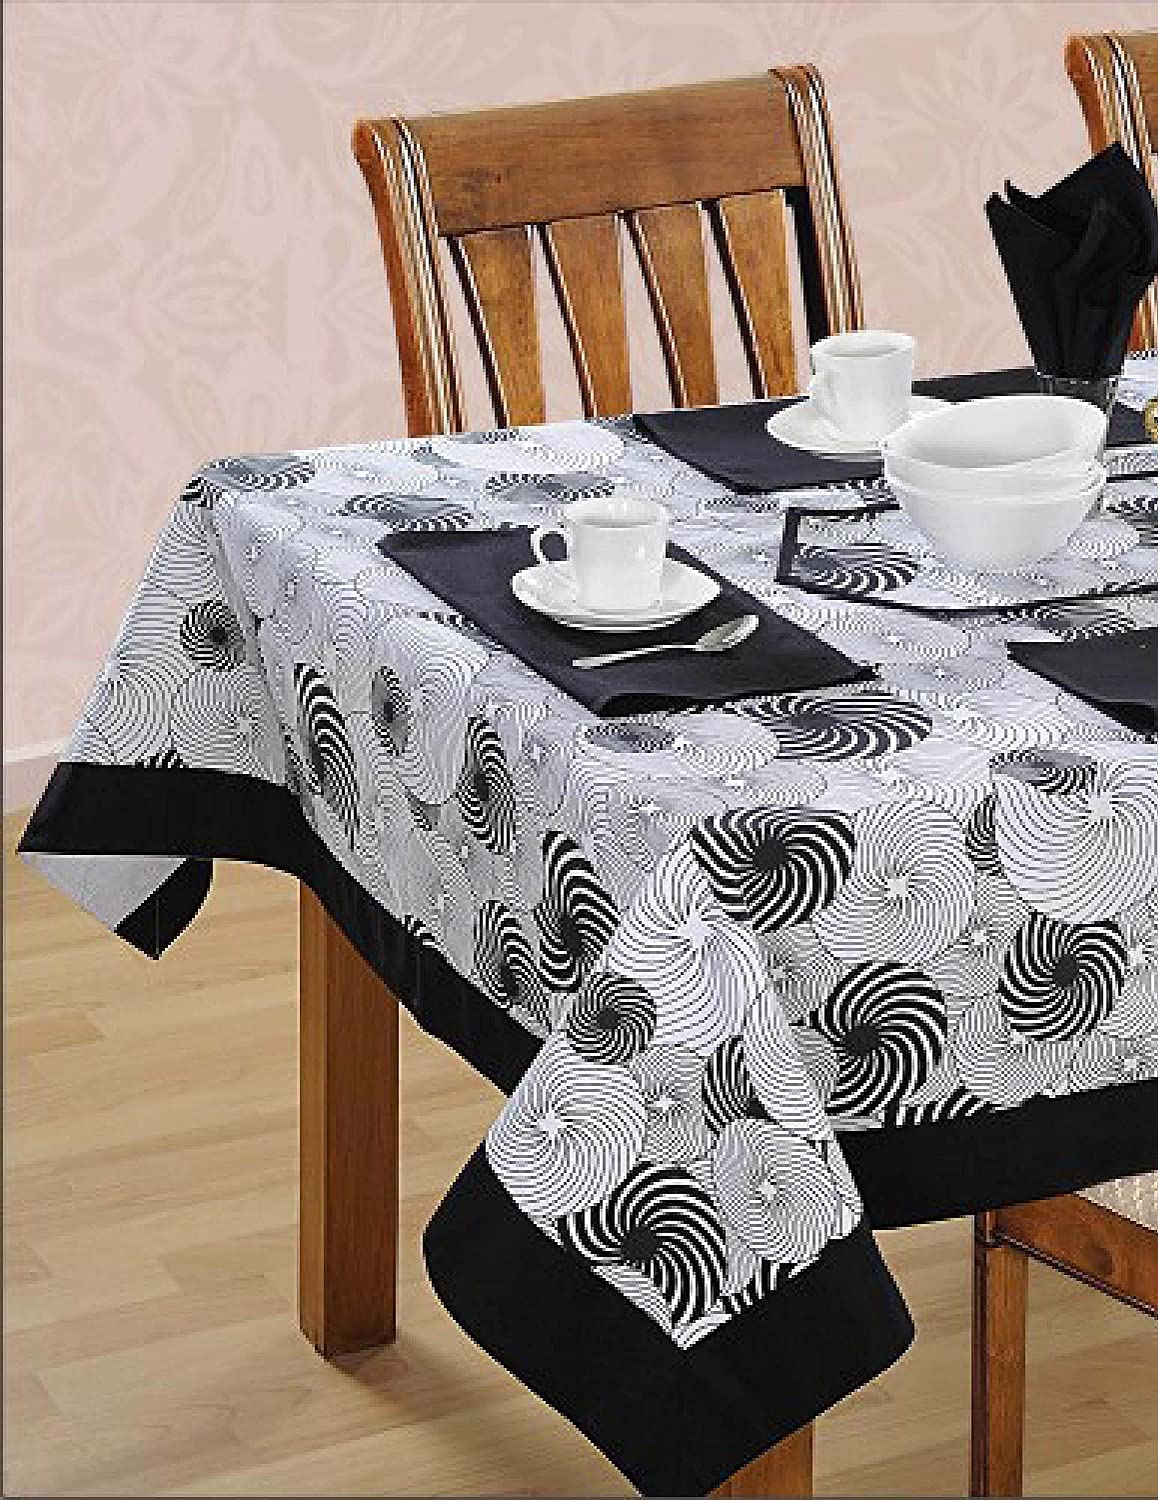 Amazon.com: Black White Cotton Spring Floral Square Tablecloths For Dinning  Room 54 X 54 Inches, Black Border: Kitchen U0026 Dining